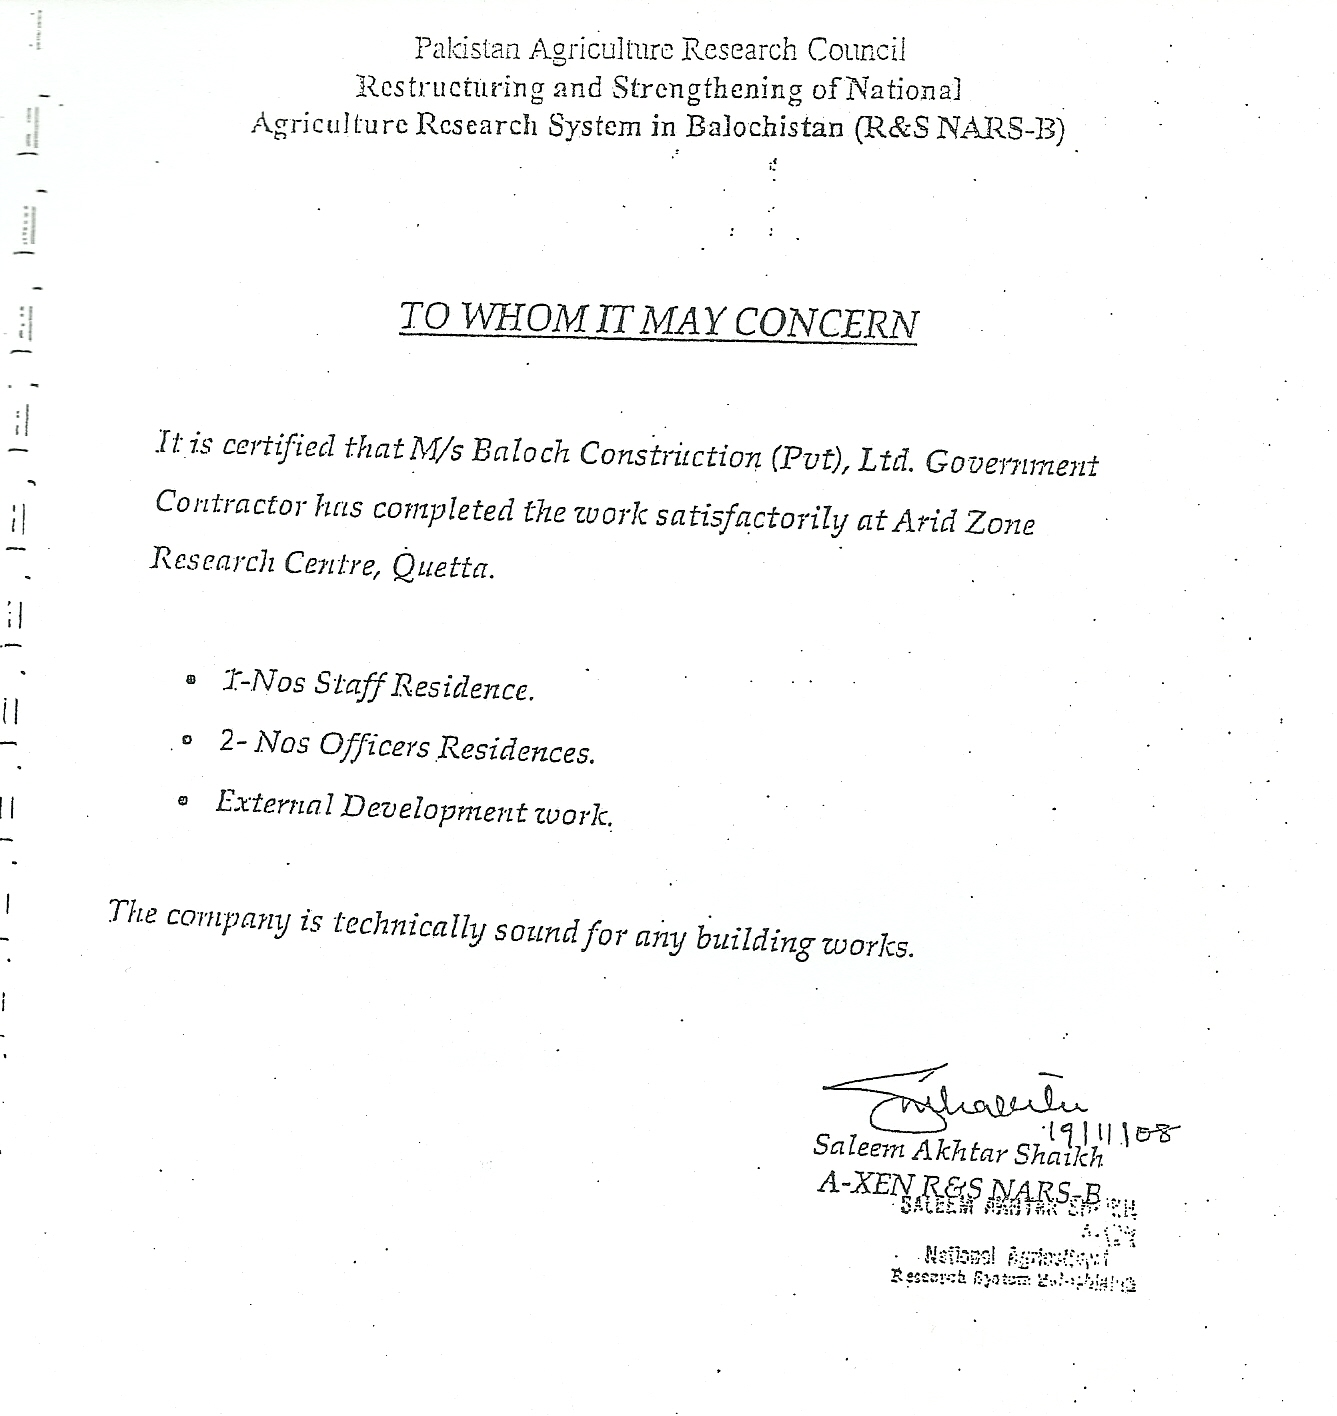 CommendationCertificate (5)